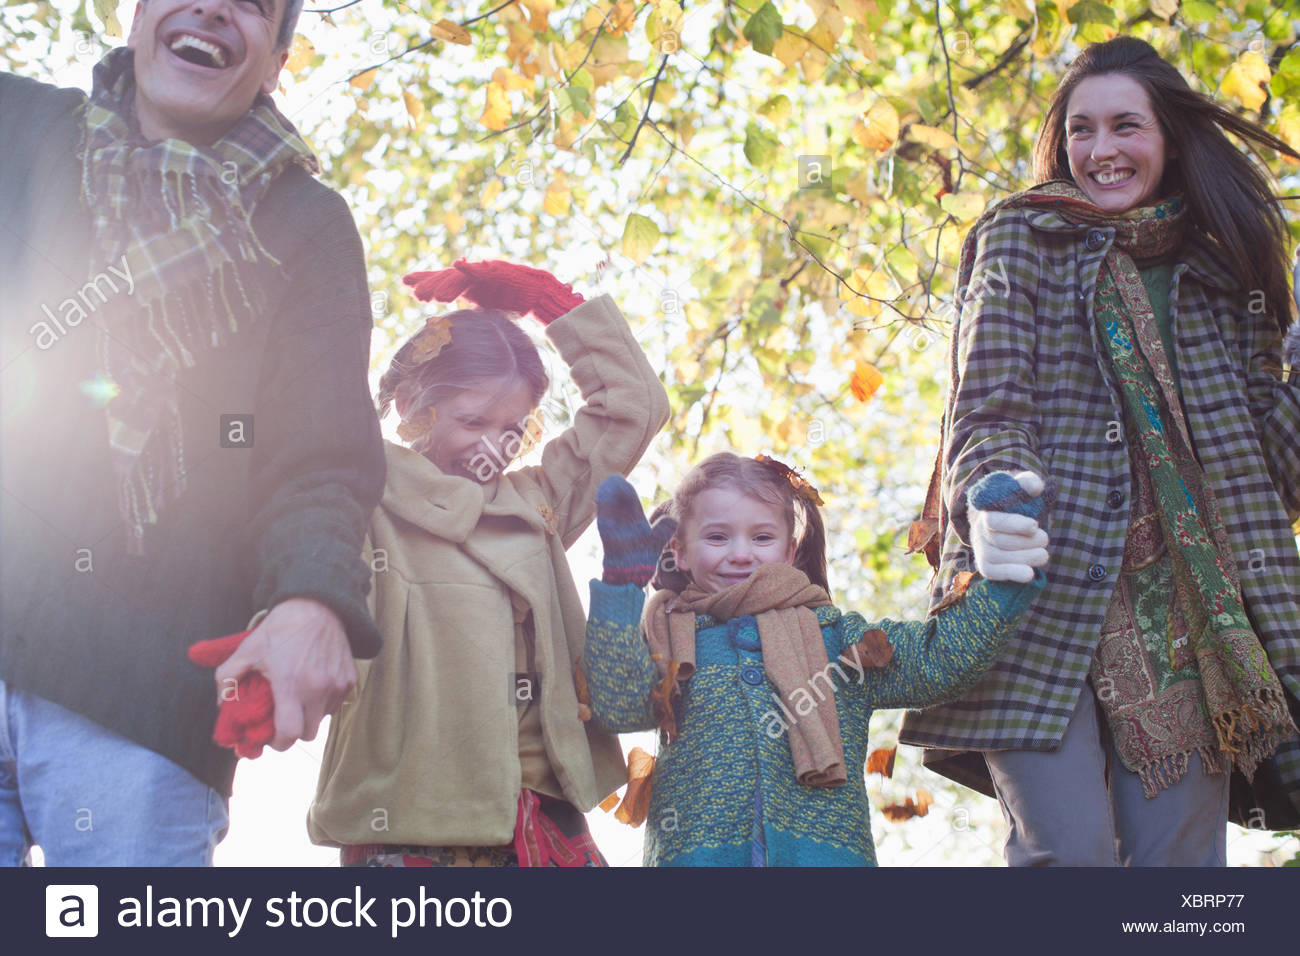 Family laughing and holding hands outdoors - Stock Image